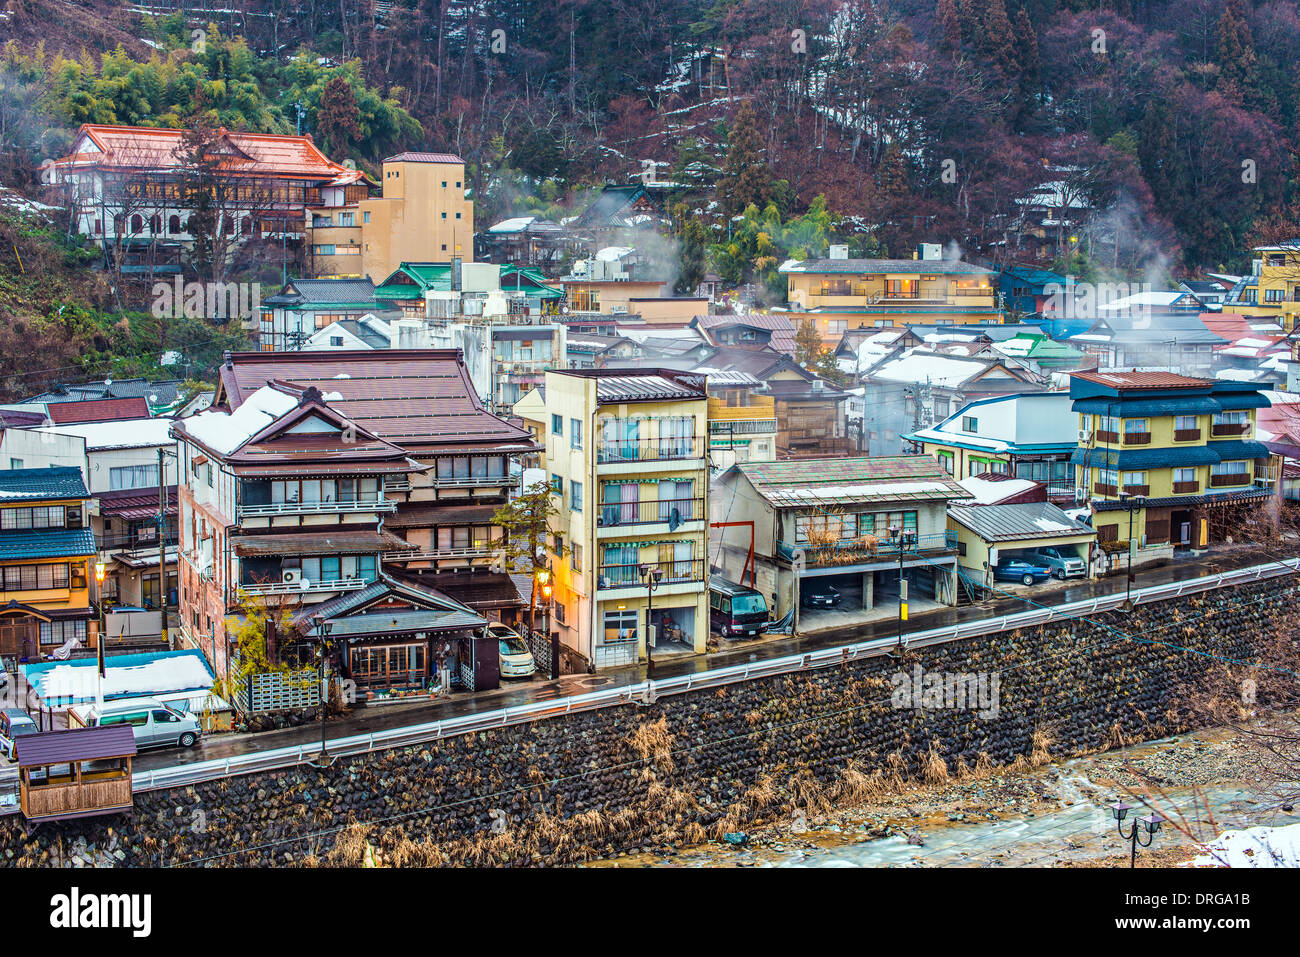 The small town of Shibu Onsen in Nagano Prefecture. The town is famed for the numerous historic bath houses located there. - Stock Image